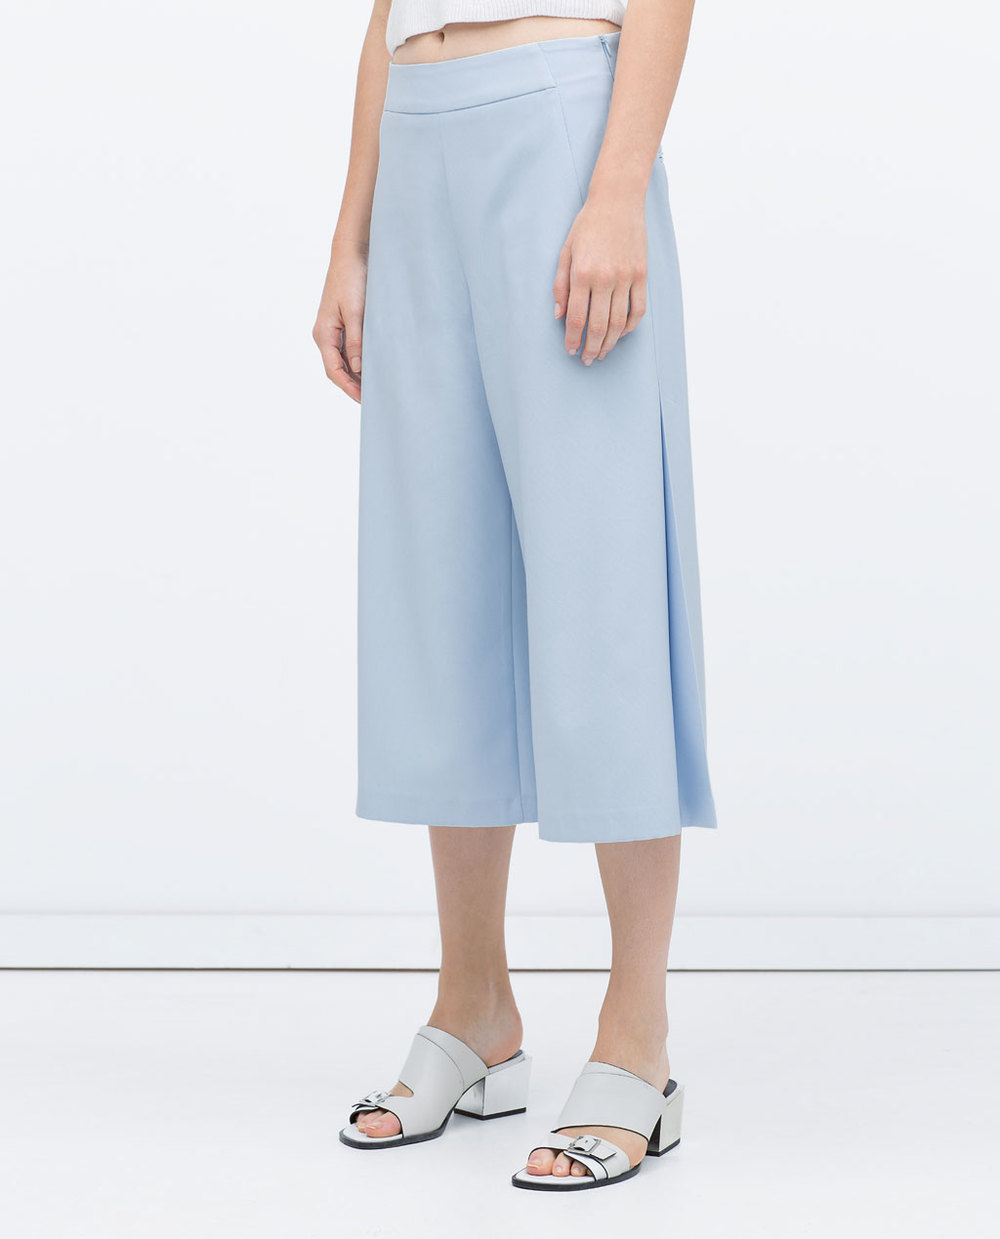 I admit it.... I am totally obsessed with culottes this season. Aside from the fact they look super vintage... The air flow and comfort make them that much more ridiculous. Gimme, Gimme!